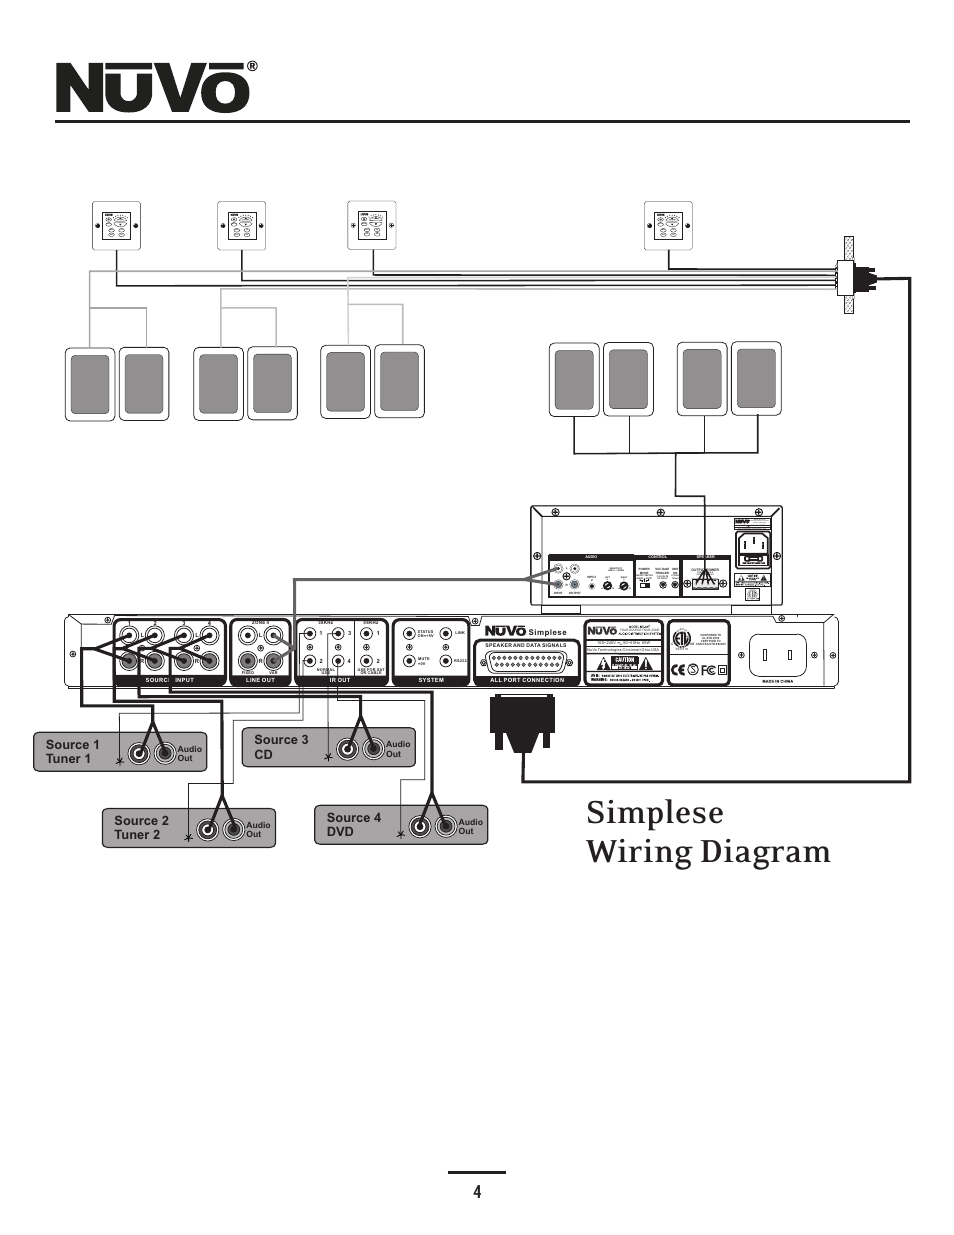 Nuvo Wiring Diagram